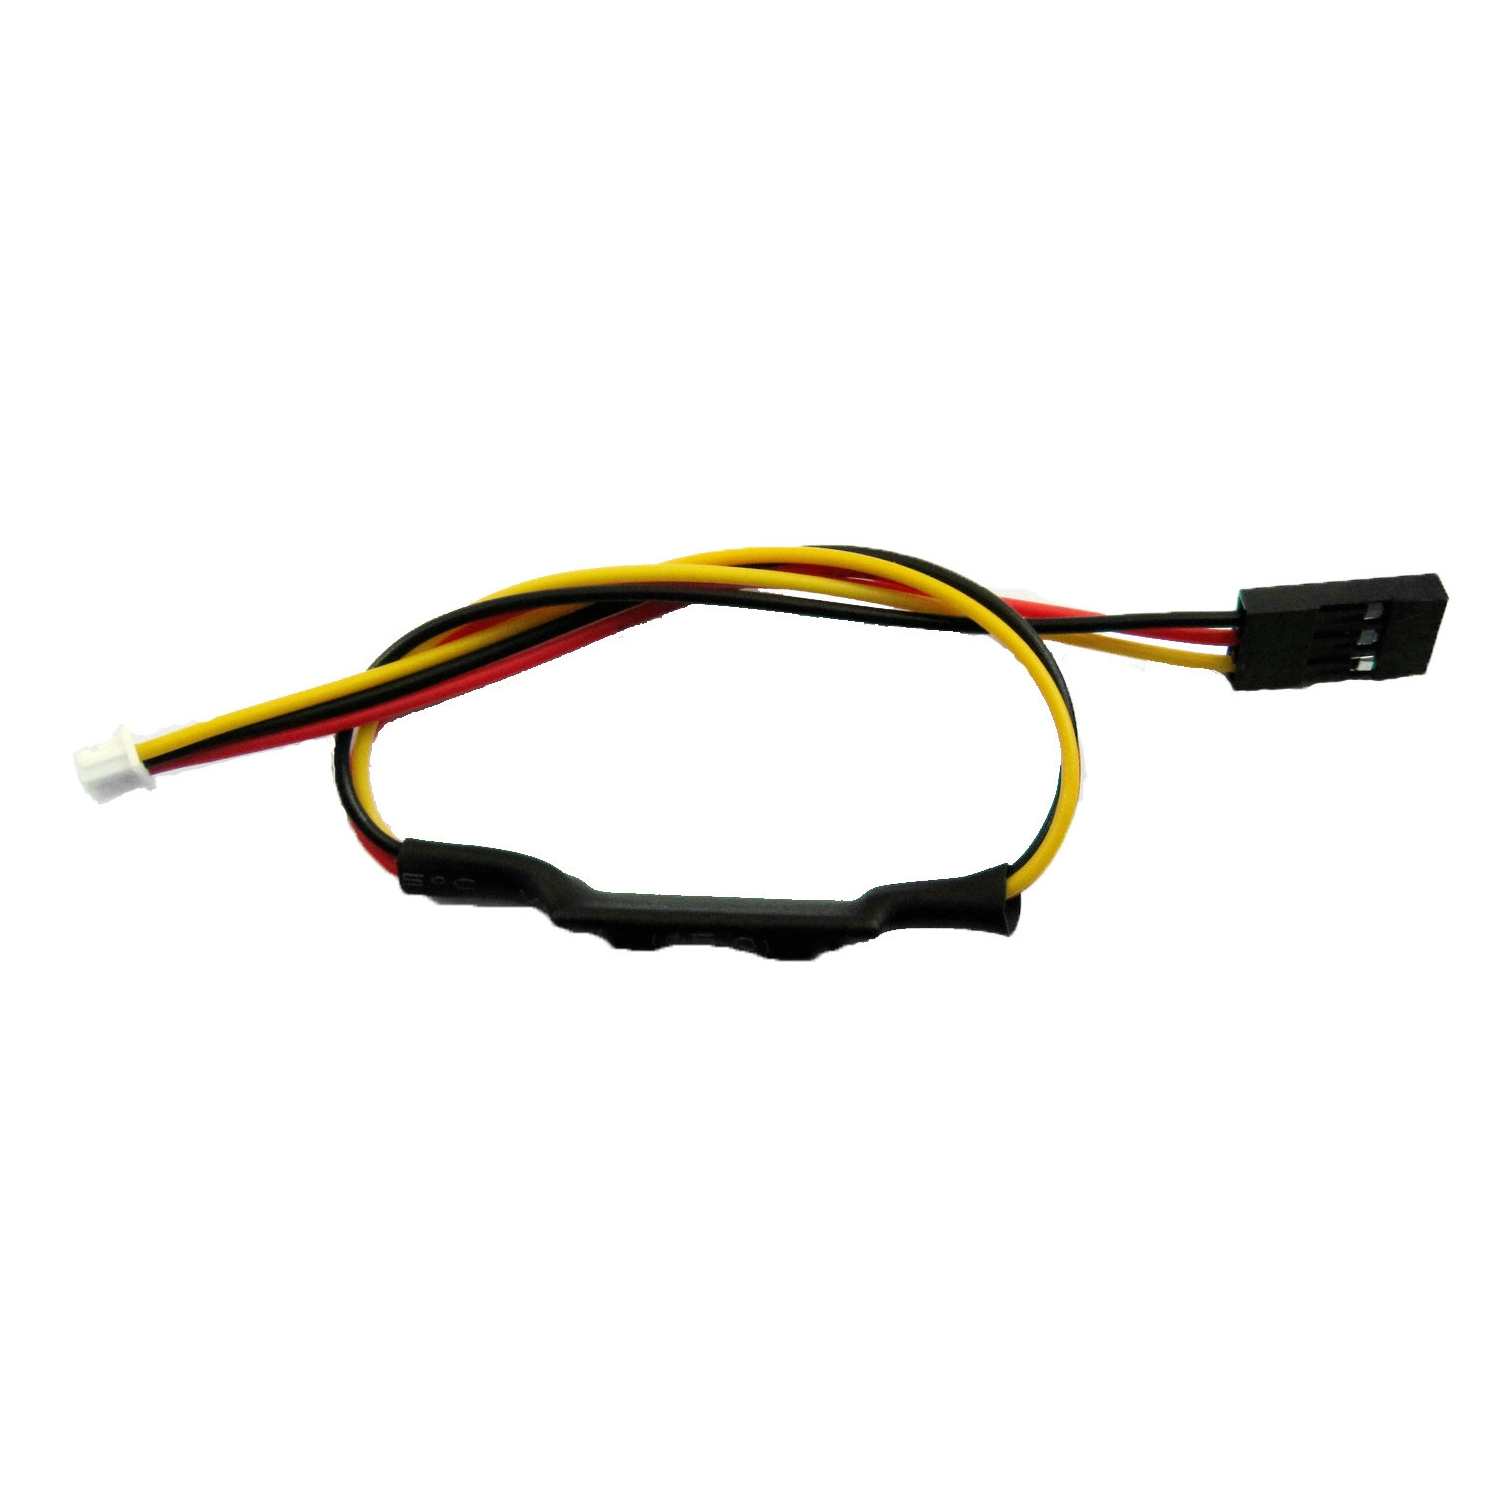 Micro DC-DC Step-down Cable 6.5V-23V Input 5V 1A Output 1.25mm 2.54mm 3P For FPV Camera